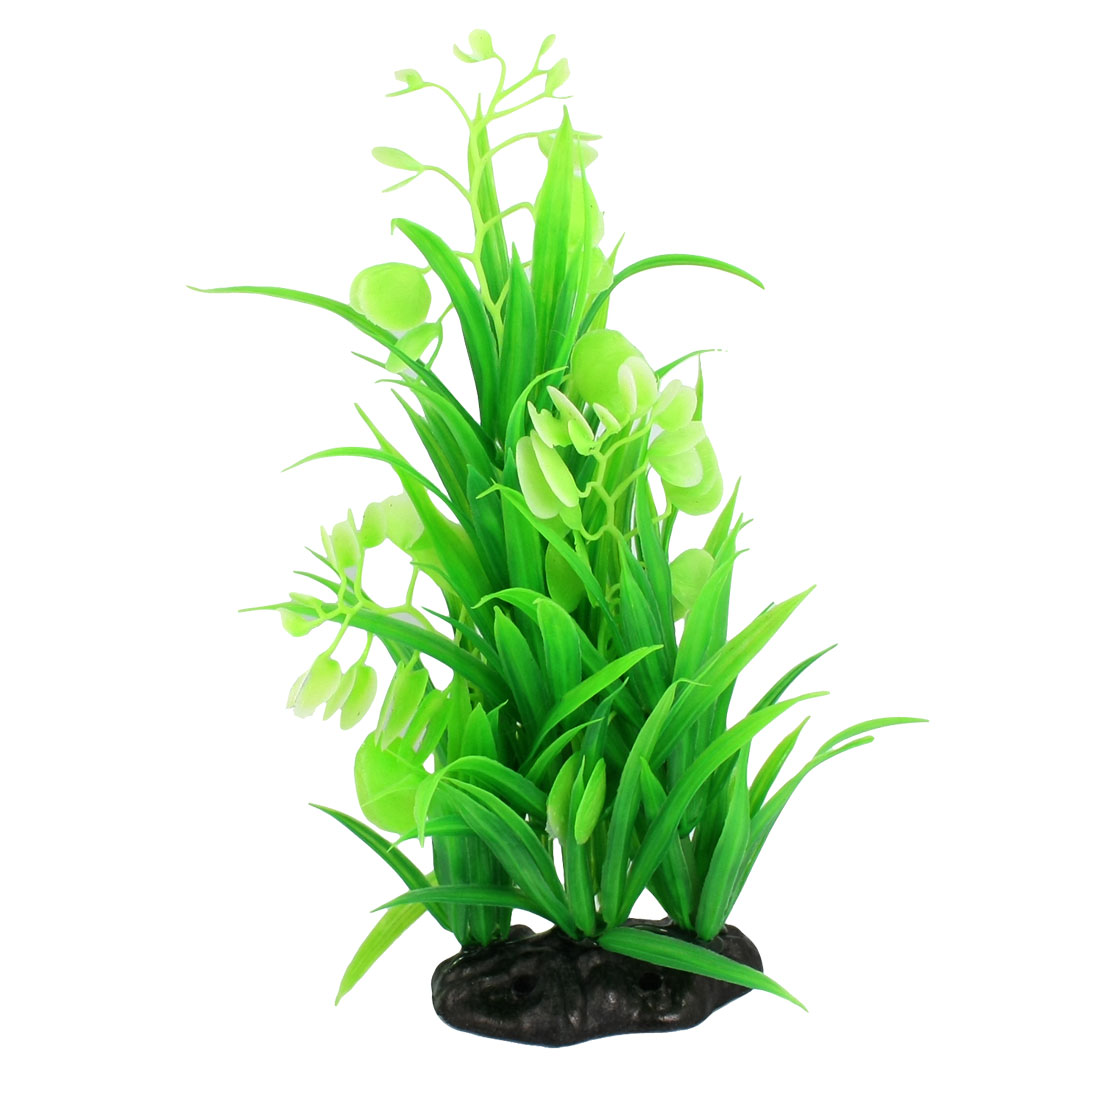 Fish Tank Artificial Ceramic Base Long Leaf Green Plastic Plants 10""